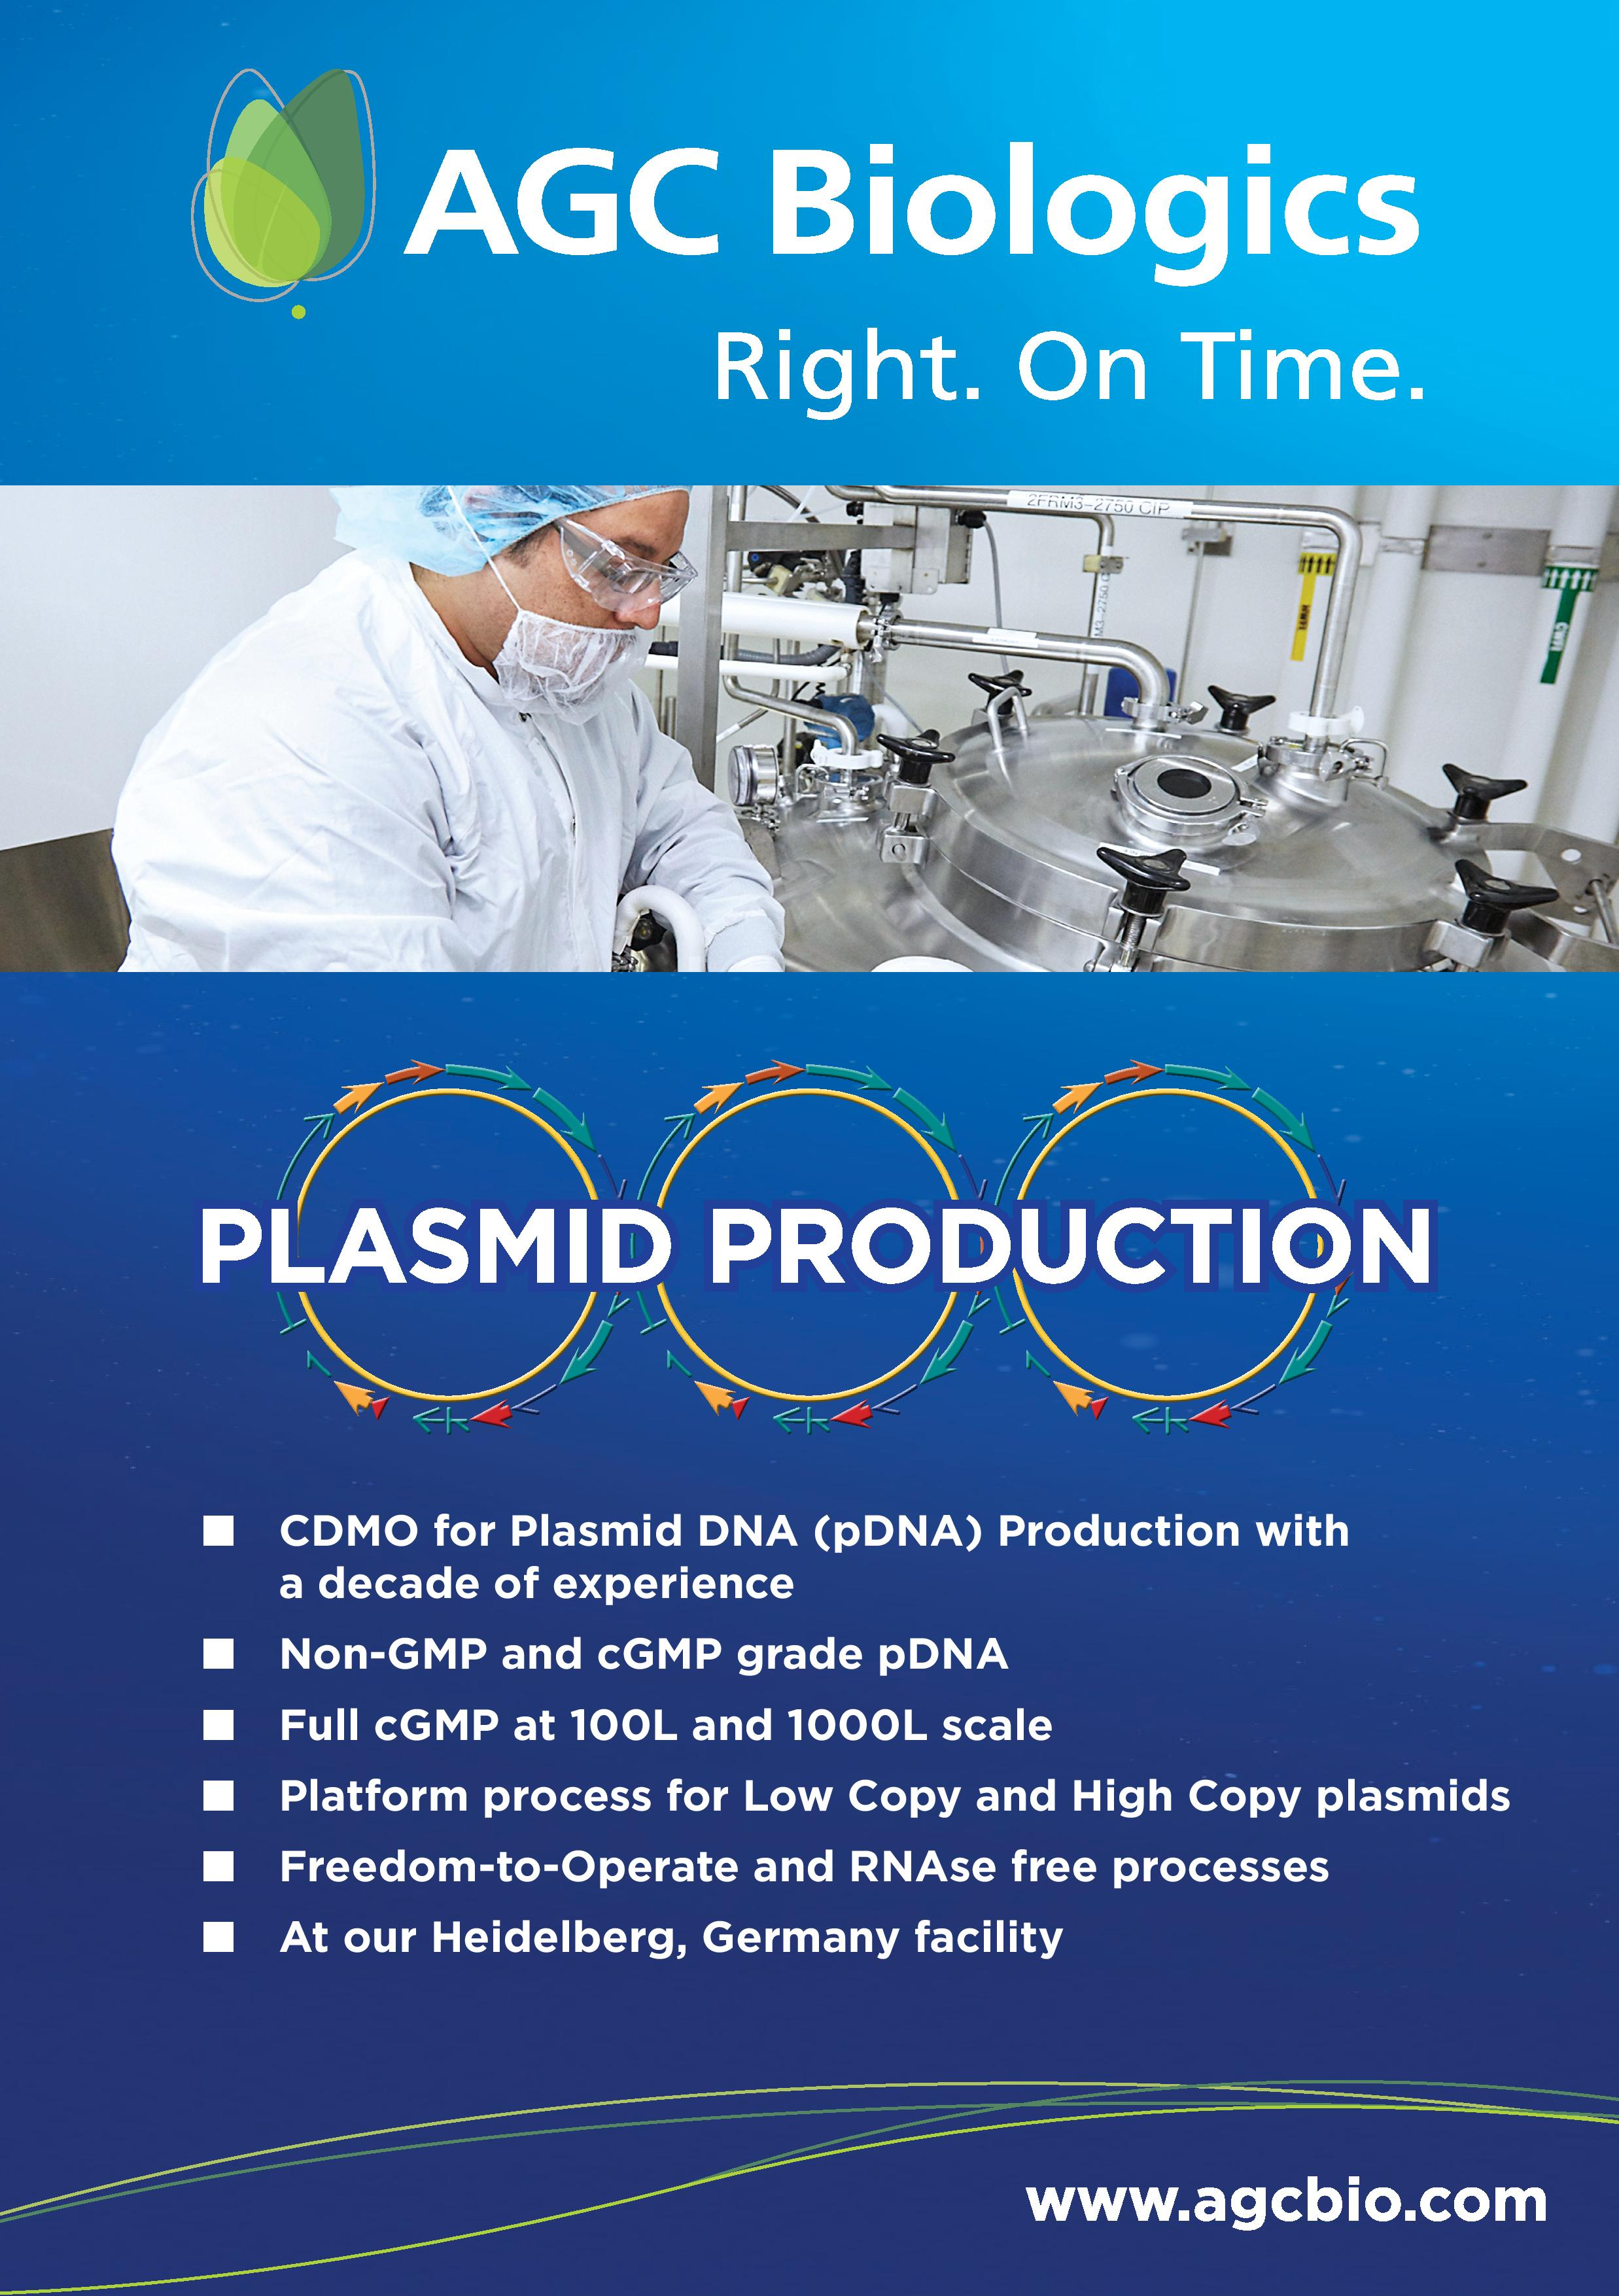 AGC Biologics Plasmid Production